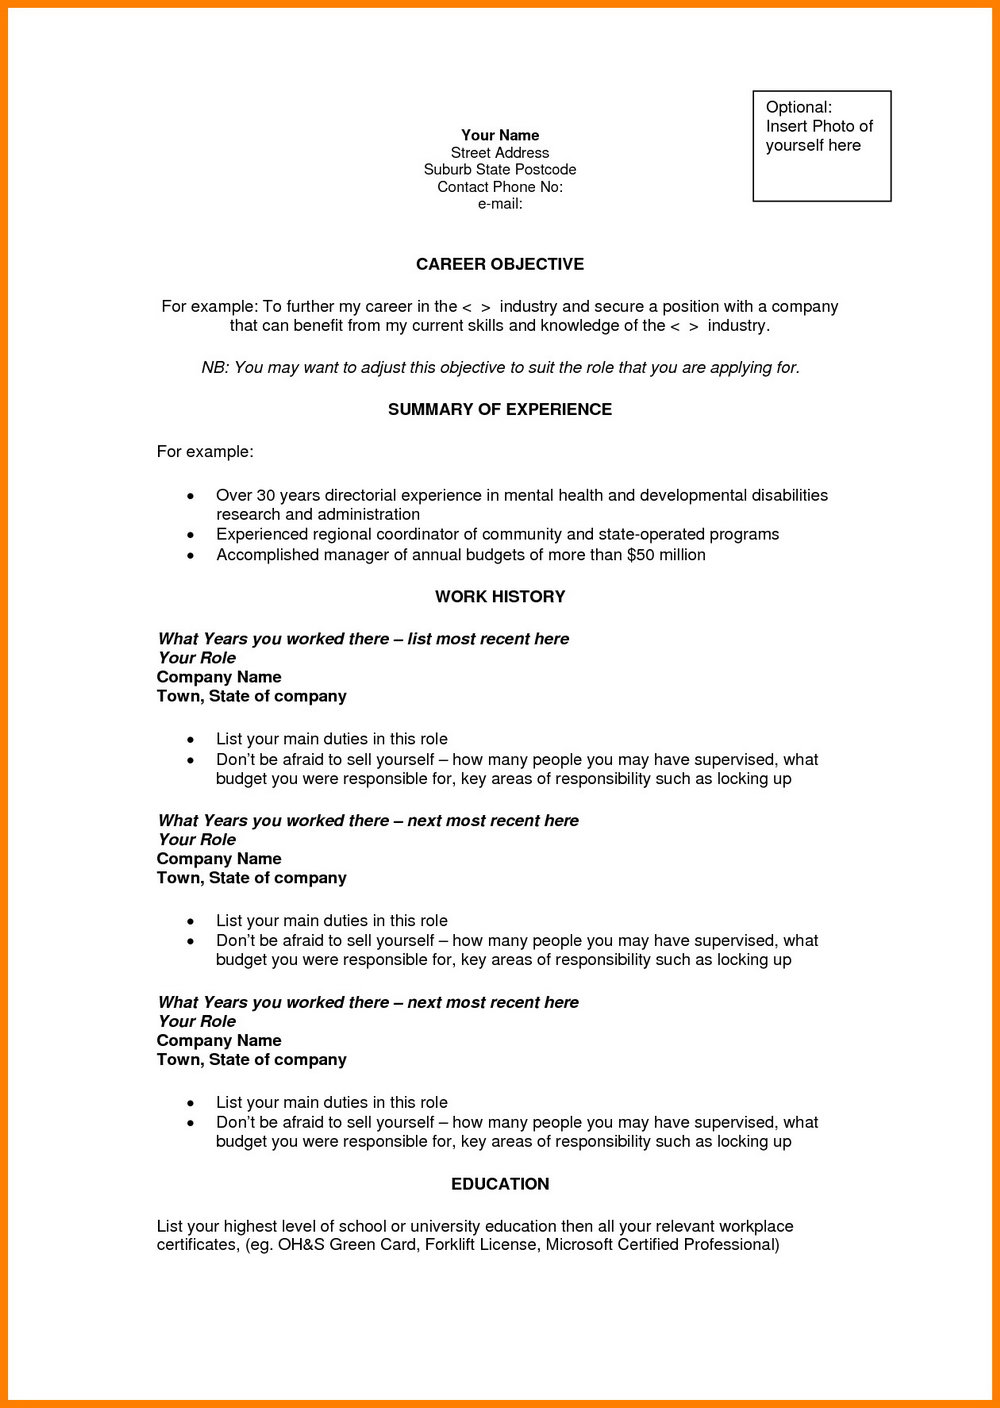 Resume Objective Examples For Nurses